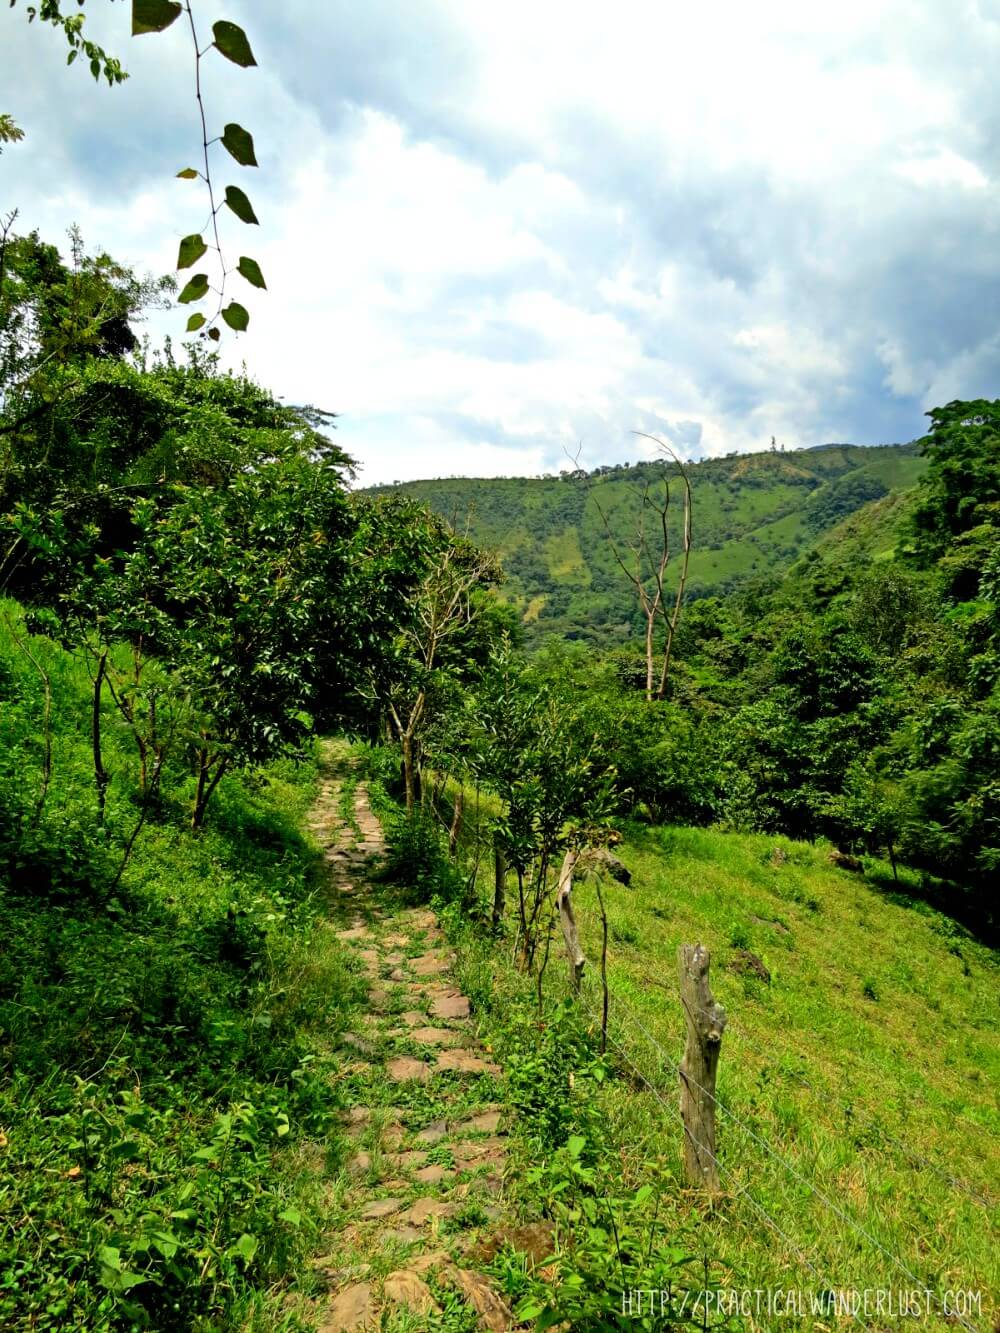 The walk to Juan Curi waterfall in San Gil, Colombia is pretty and flat until you decide to rapell, at which point it turns into a near-vertical hill scramble complete with ropes to haul yourself up.